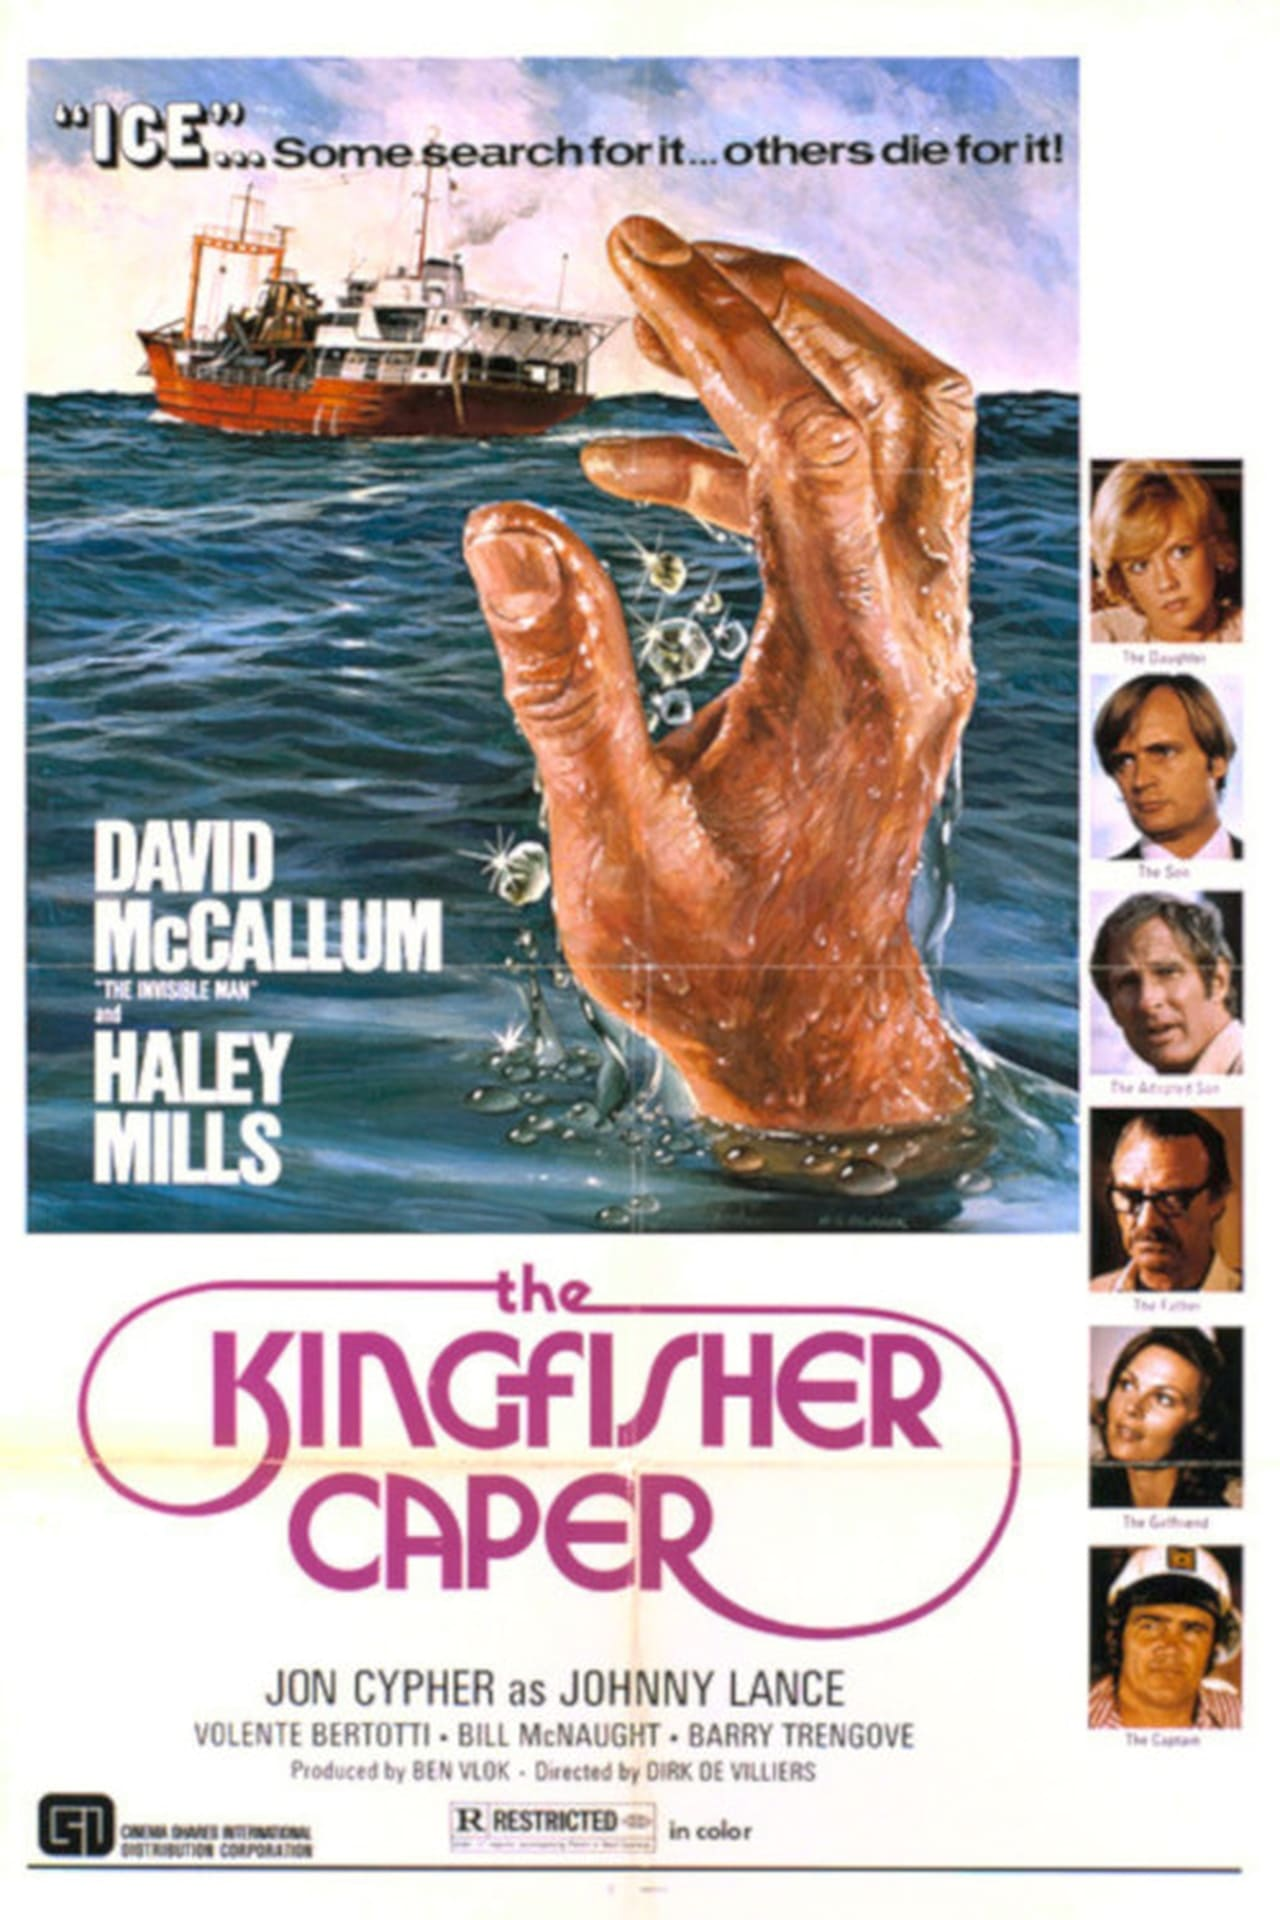 The Kingfisher Caper